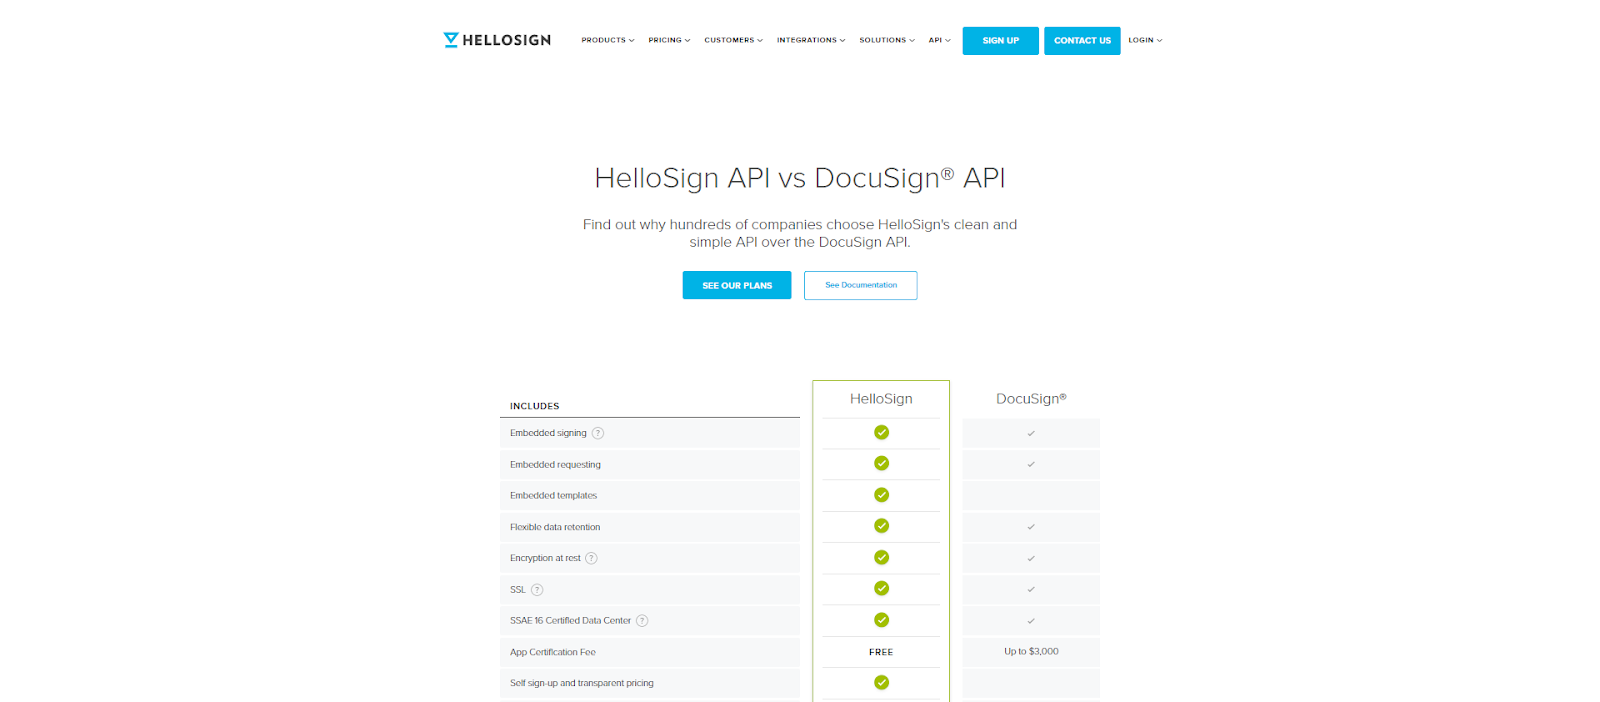 HelloSign has no qualms with contrasting their product directly with competitors or alternative solutions.